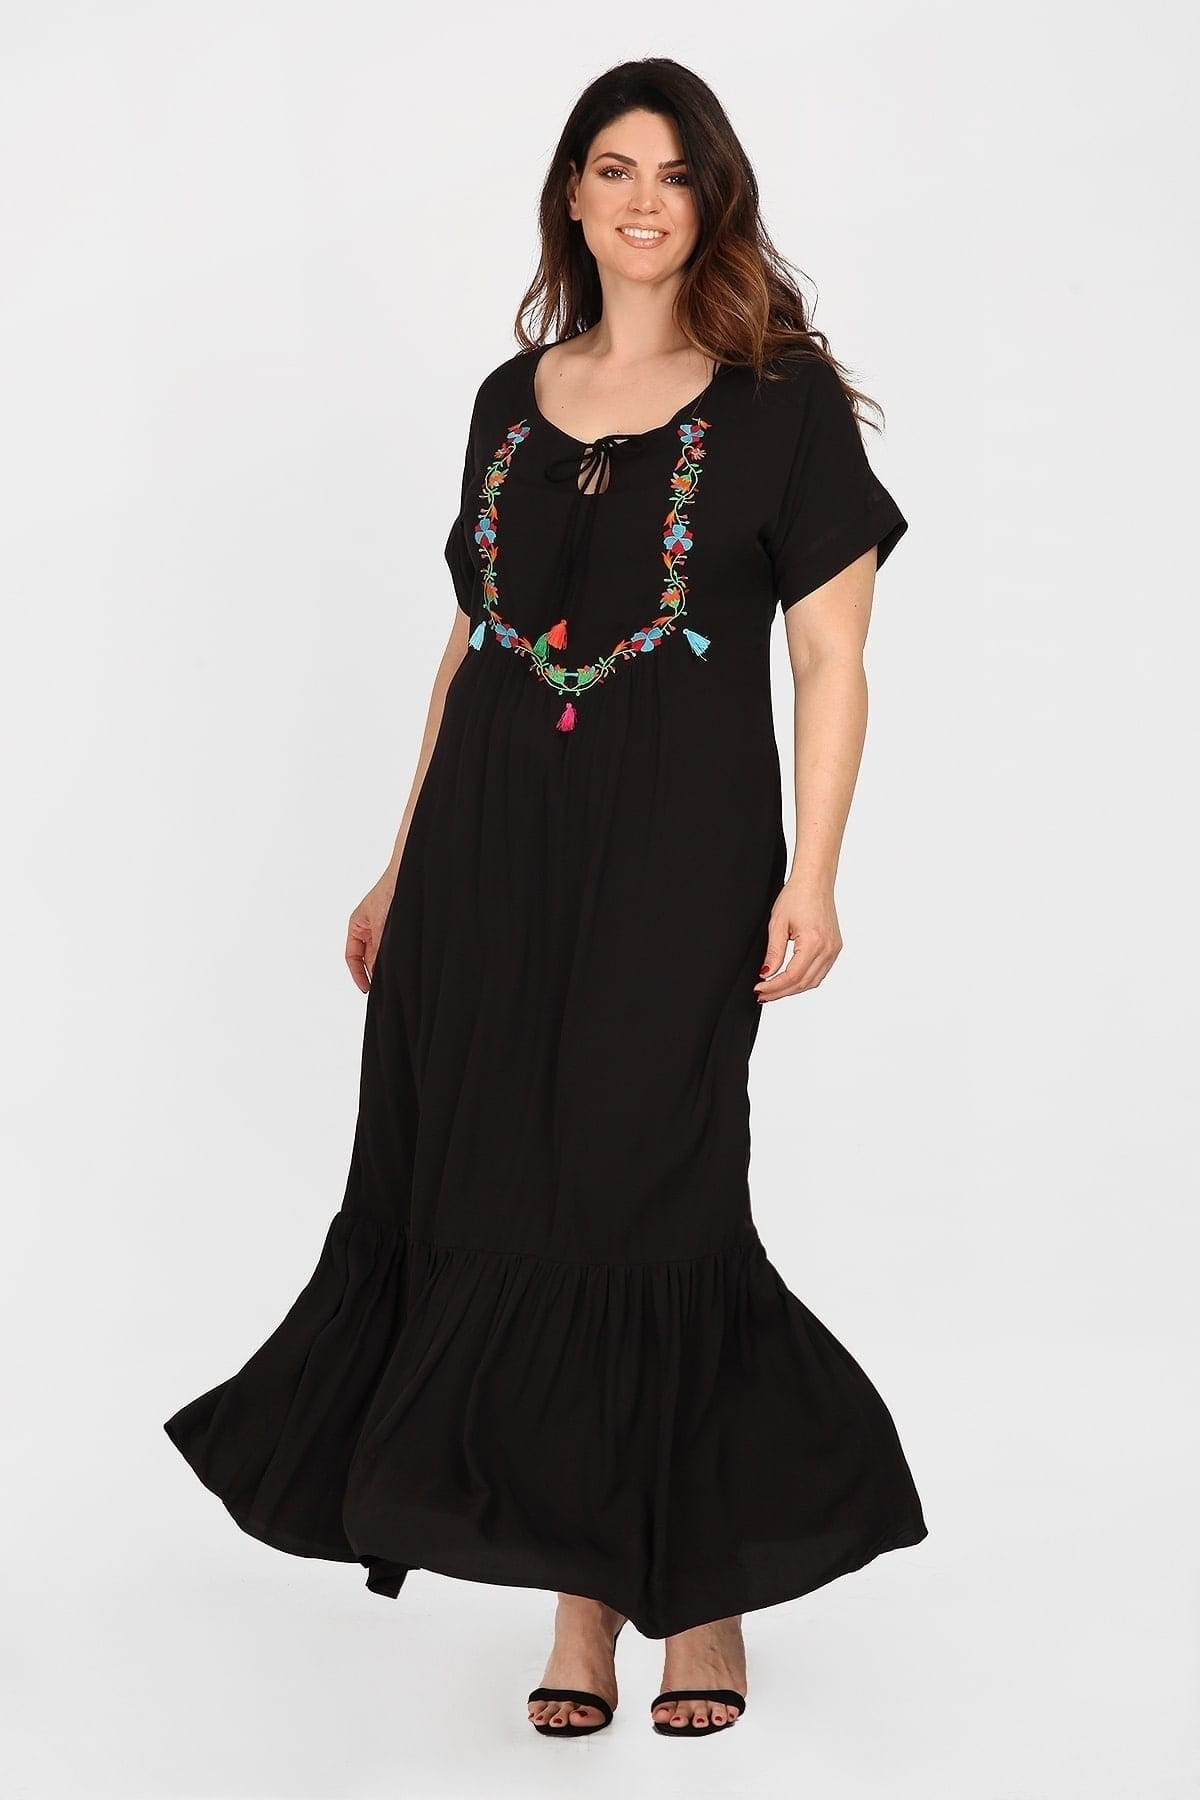 Maxi dress with embroidery flowers and tassels